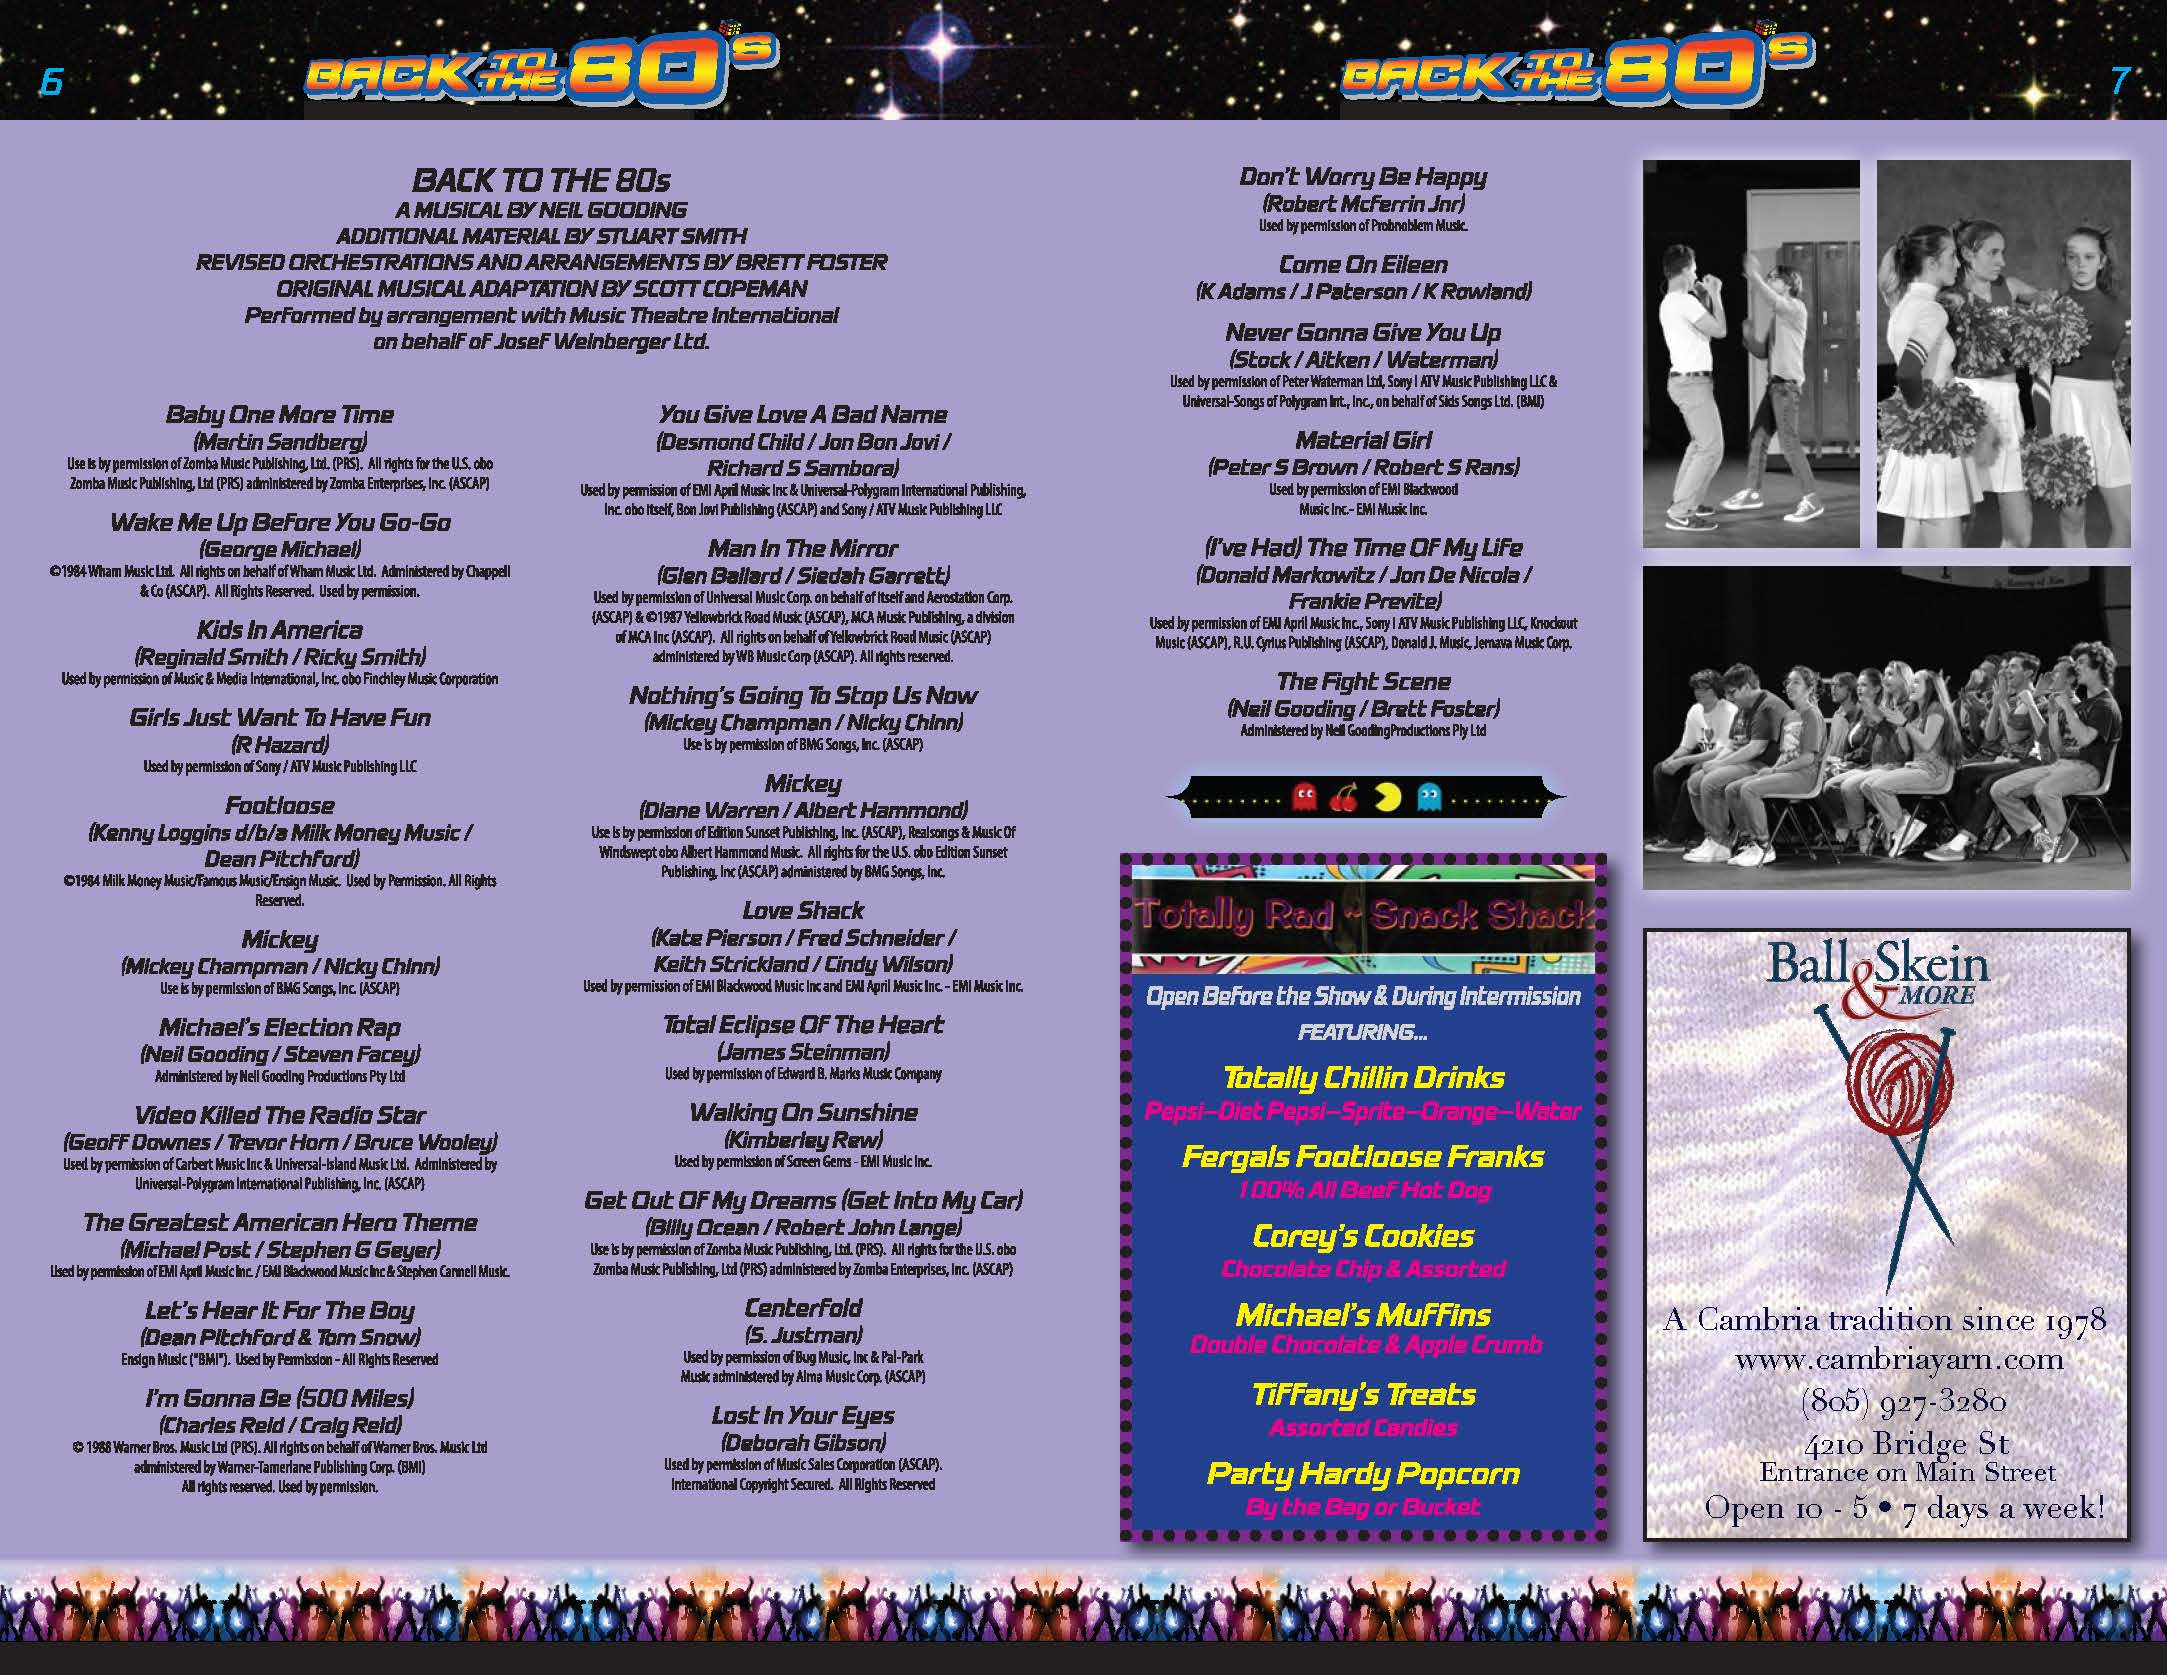 cuhs-drama-back-to-the-80s-program-vweb_reduced_page_4